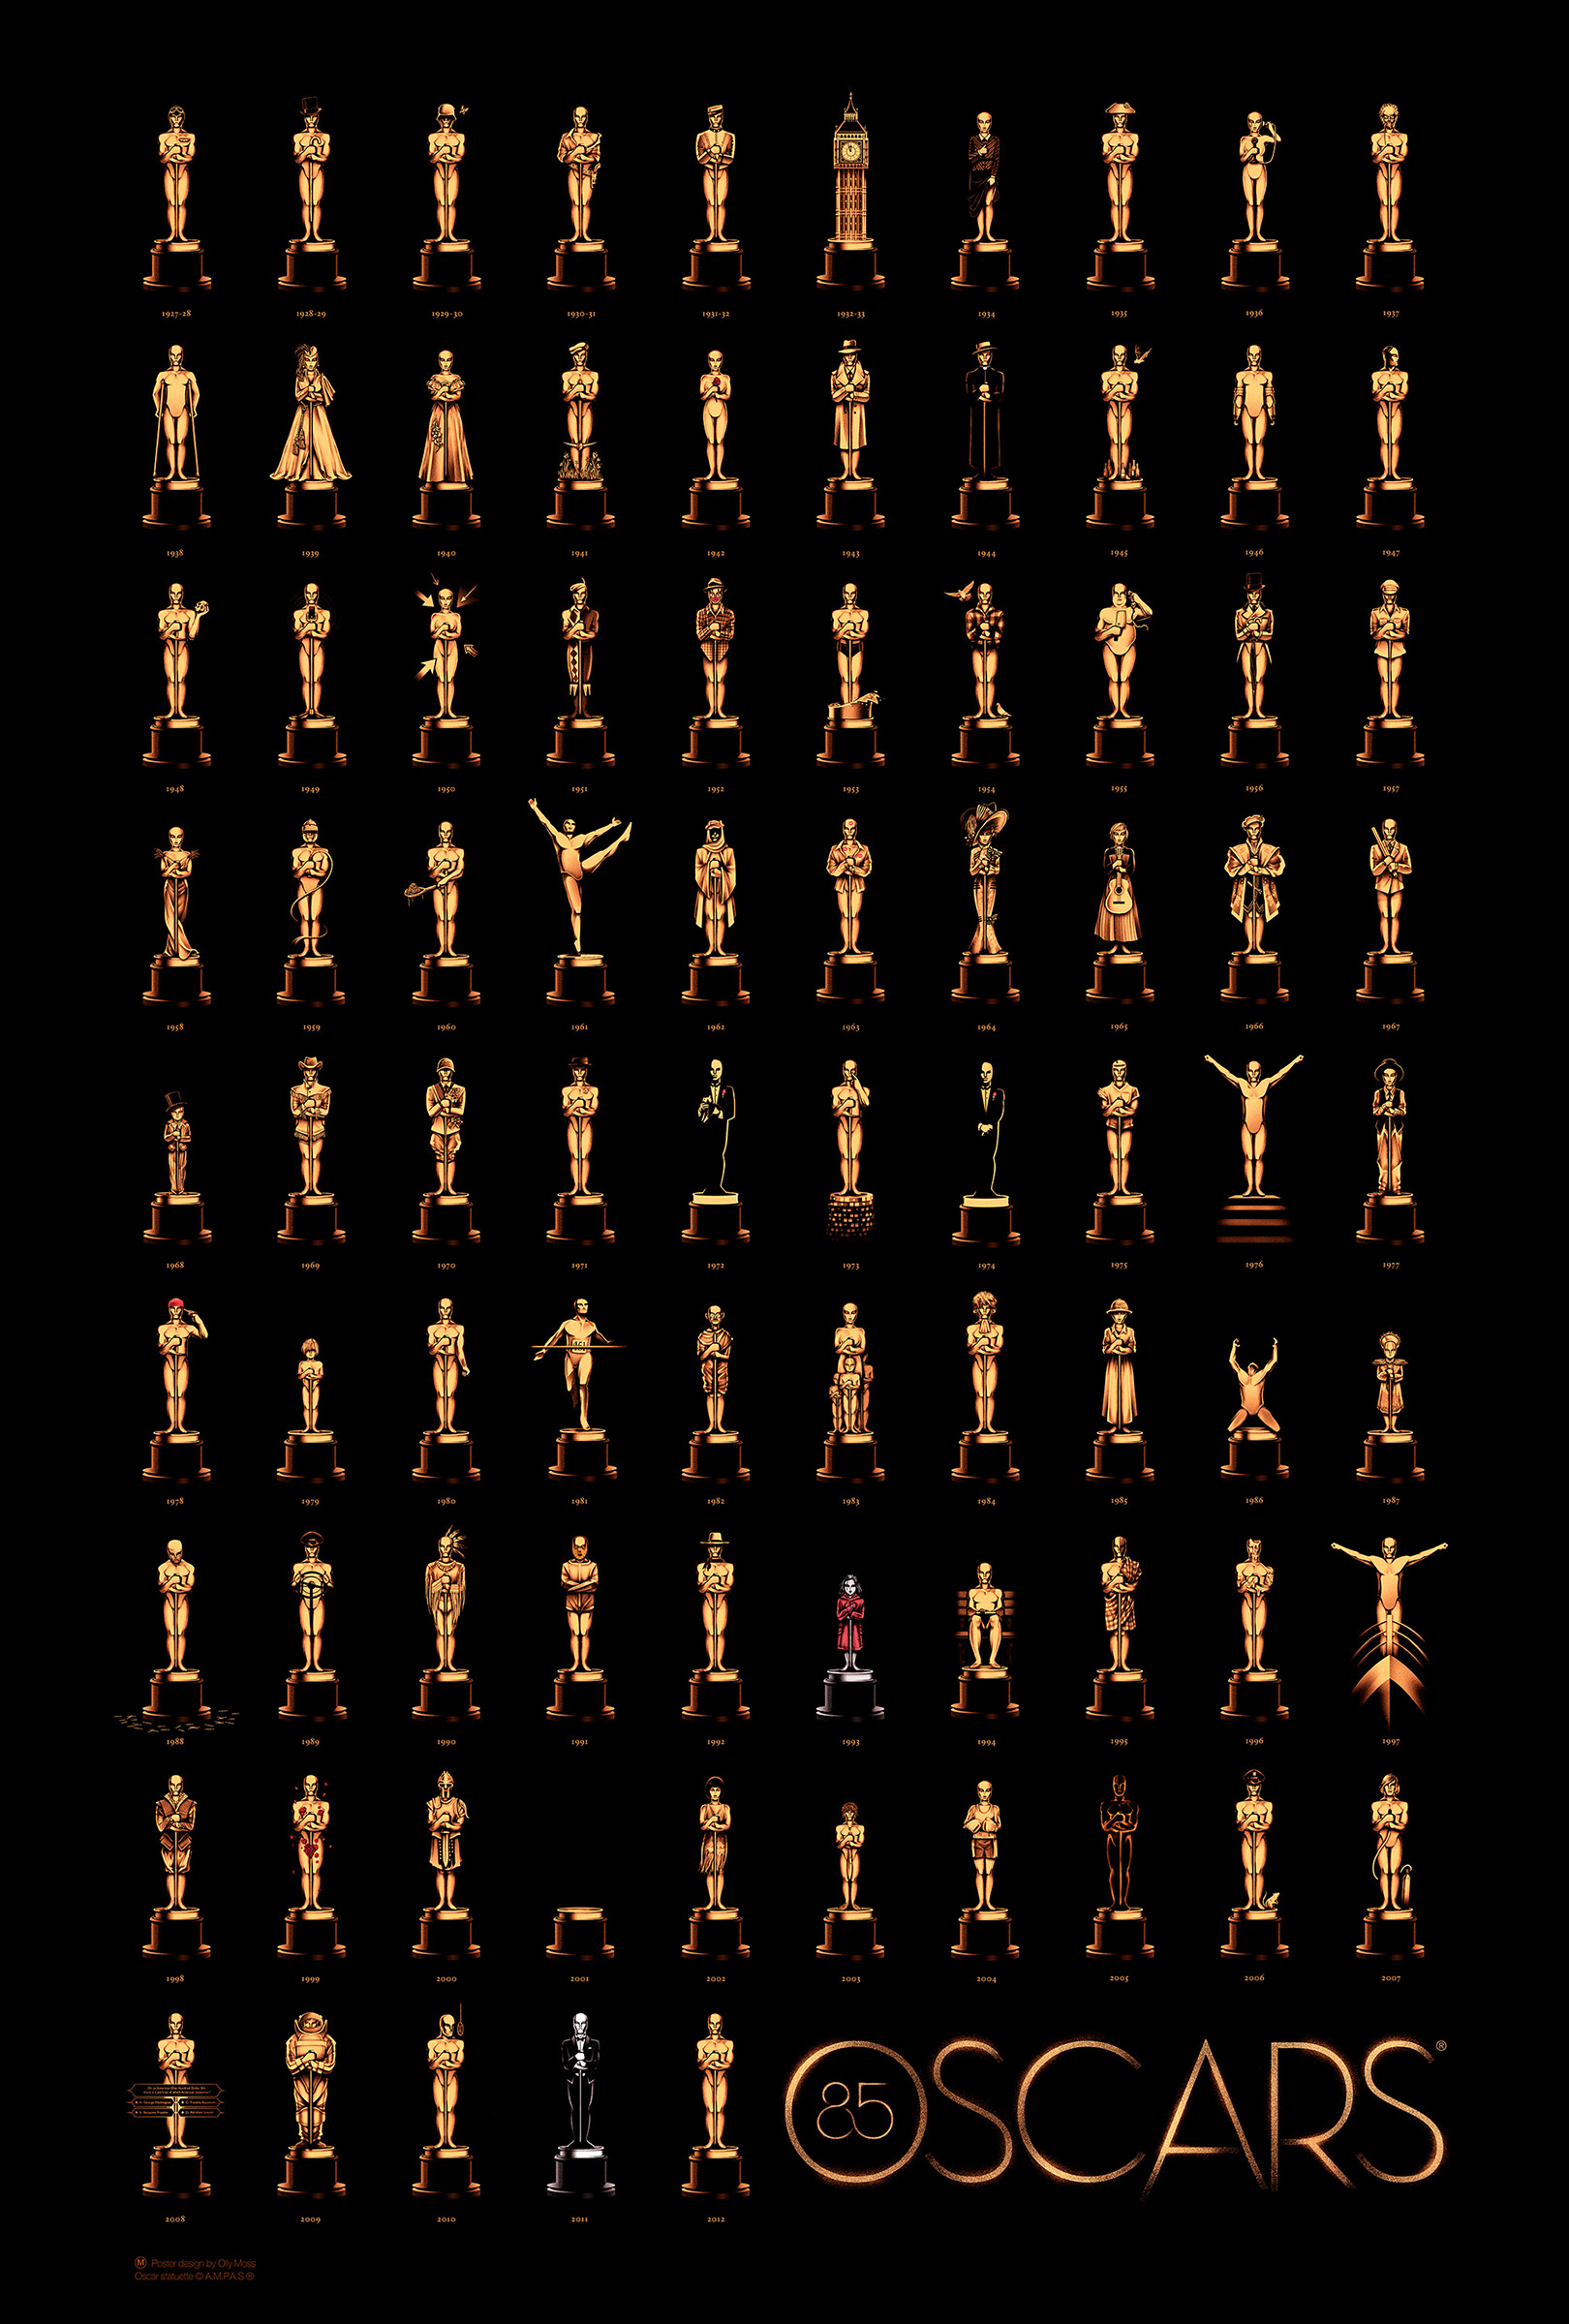 Oscar poster commemorates 85 years of Best Pictures